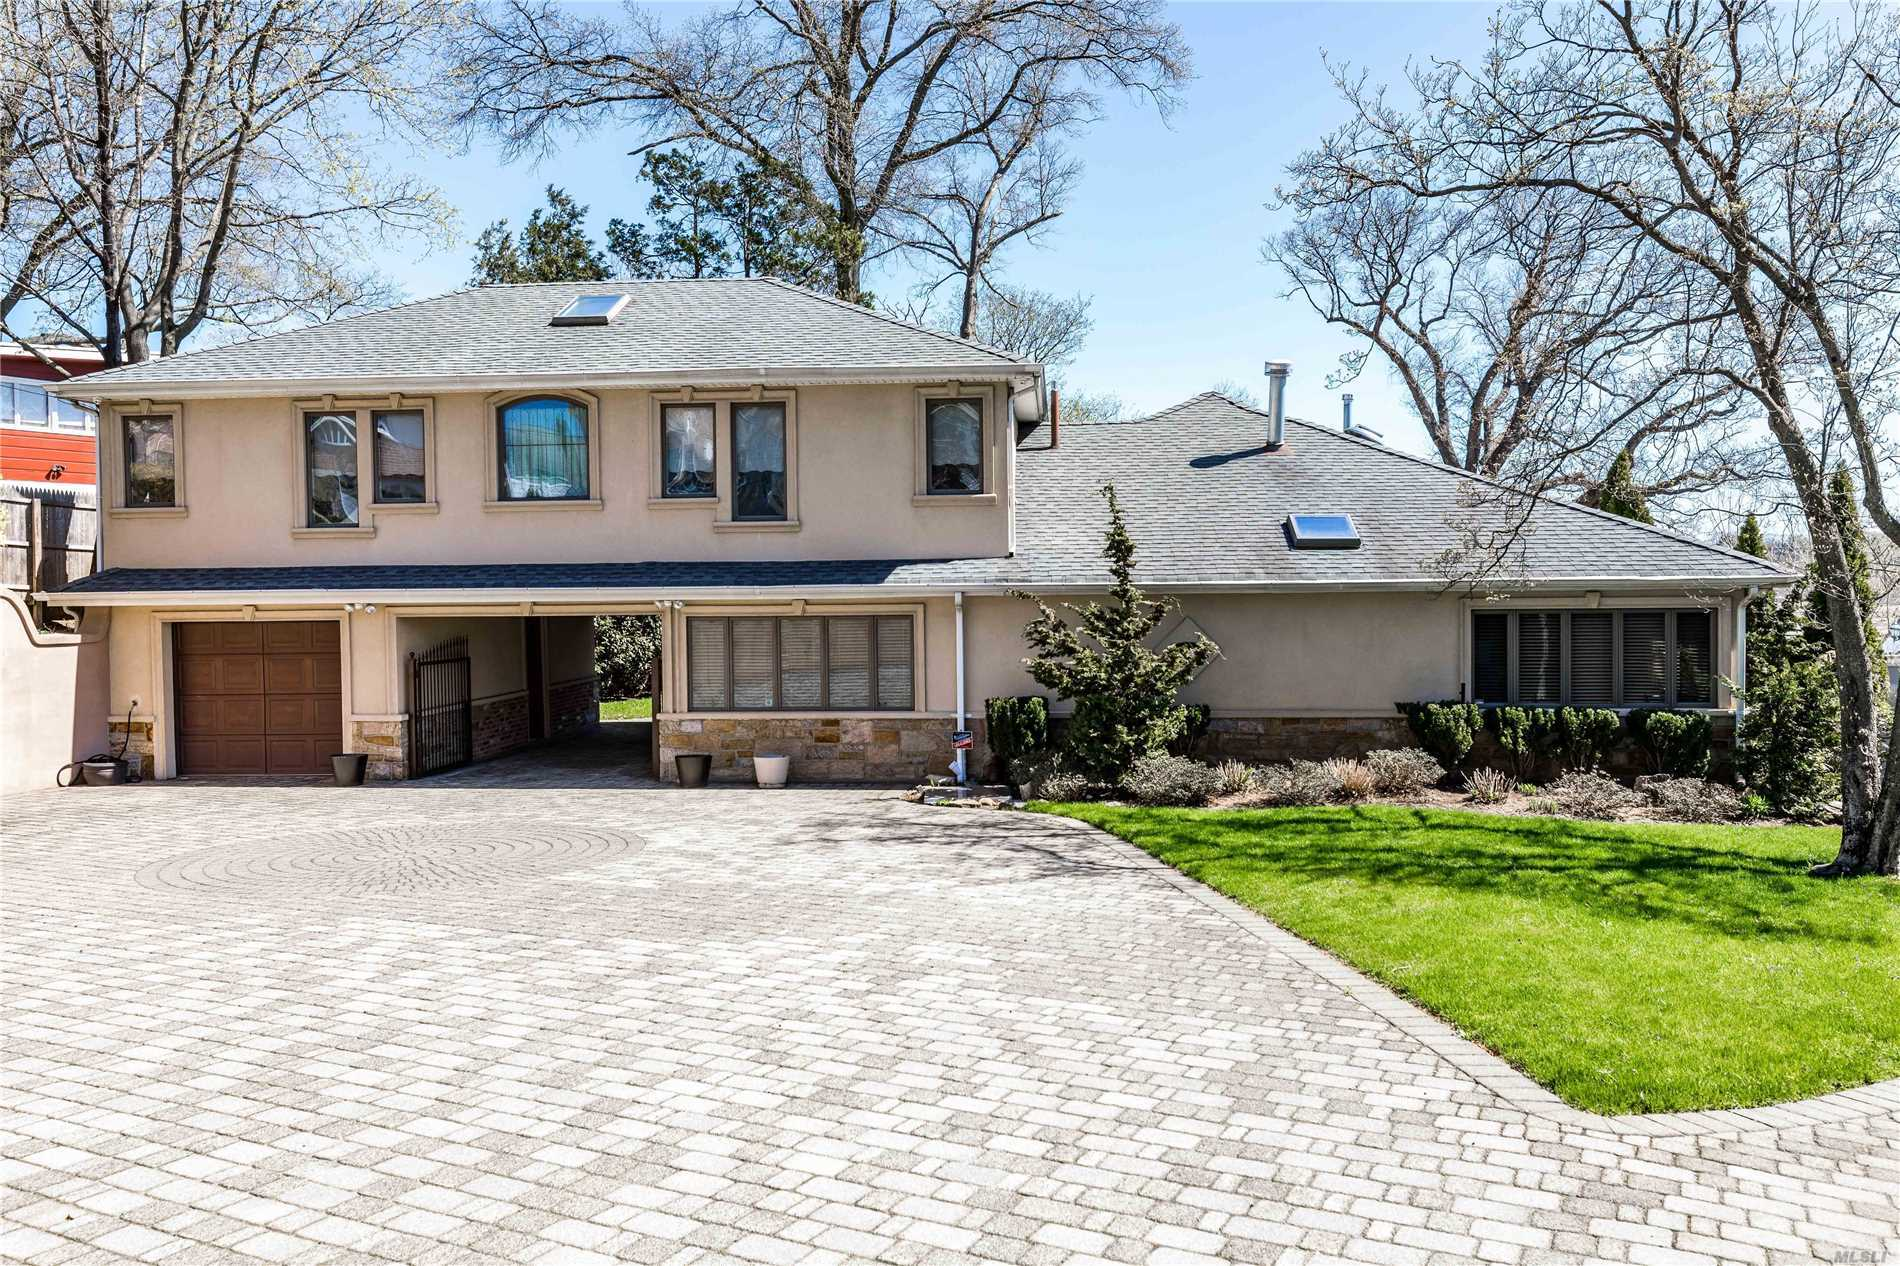 Pristine Bayside Home with Water Views Renovated to Perfection! Grand Entry Foyer, Spacious Living Room With Large, Stone Wood Burning Fireplace, French Doors Open to Over-Sized Formal Dining Room, Custom Gourmet Eat-In Kitchen with Top of the Line Stainless Steel Appliances, Water Views Throughout, 2 Master Bedrooms With En Suite Jacuzzi Baths. Alarm System With Cameras, Andersen Windows, Large Backyard with Large Salt Water Heated Pool. This Home Is a True Gem And A Must See!